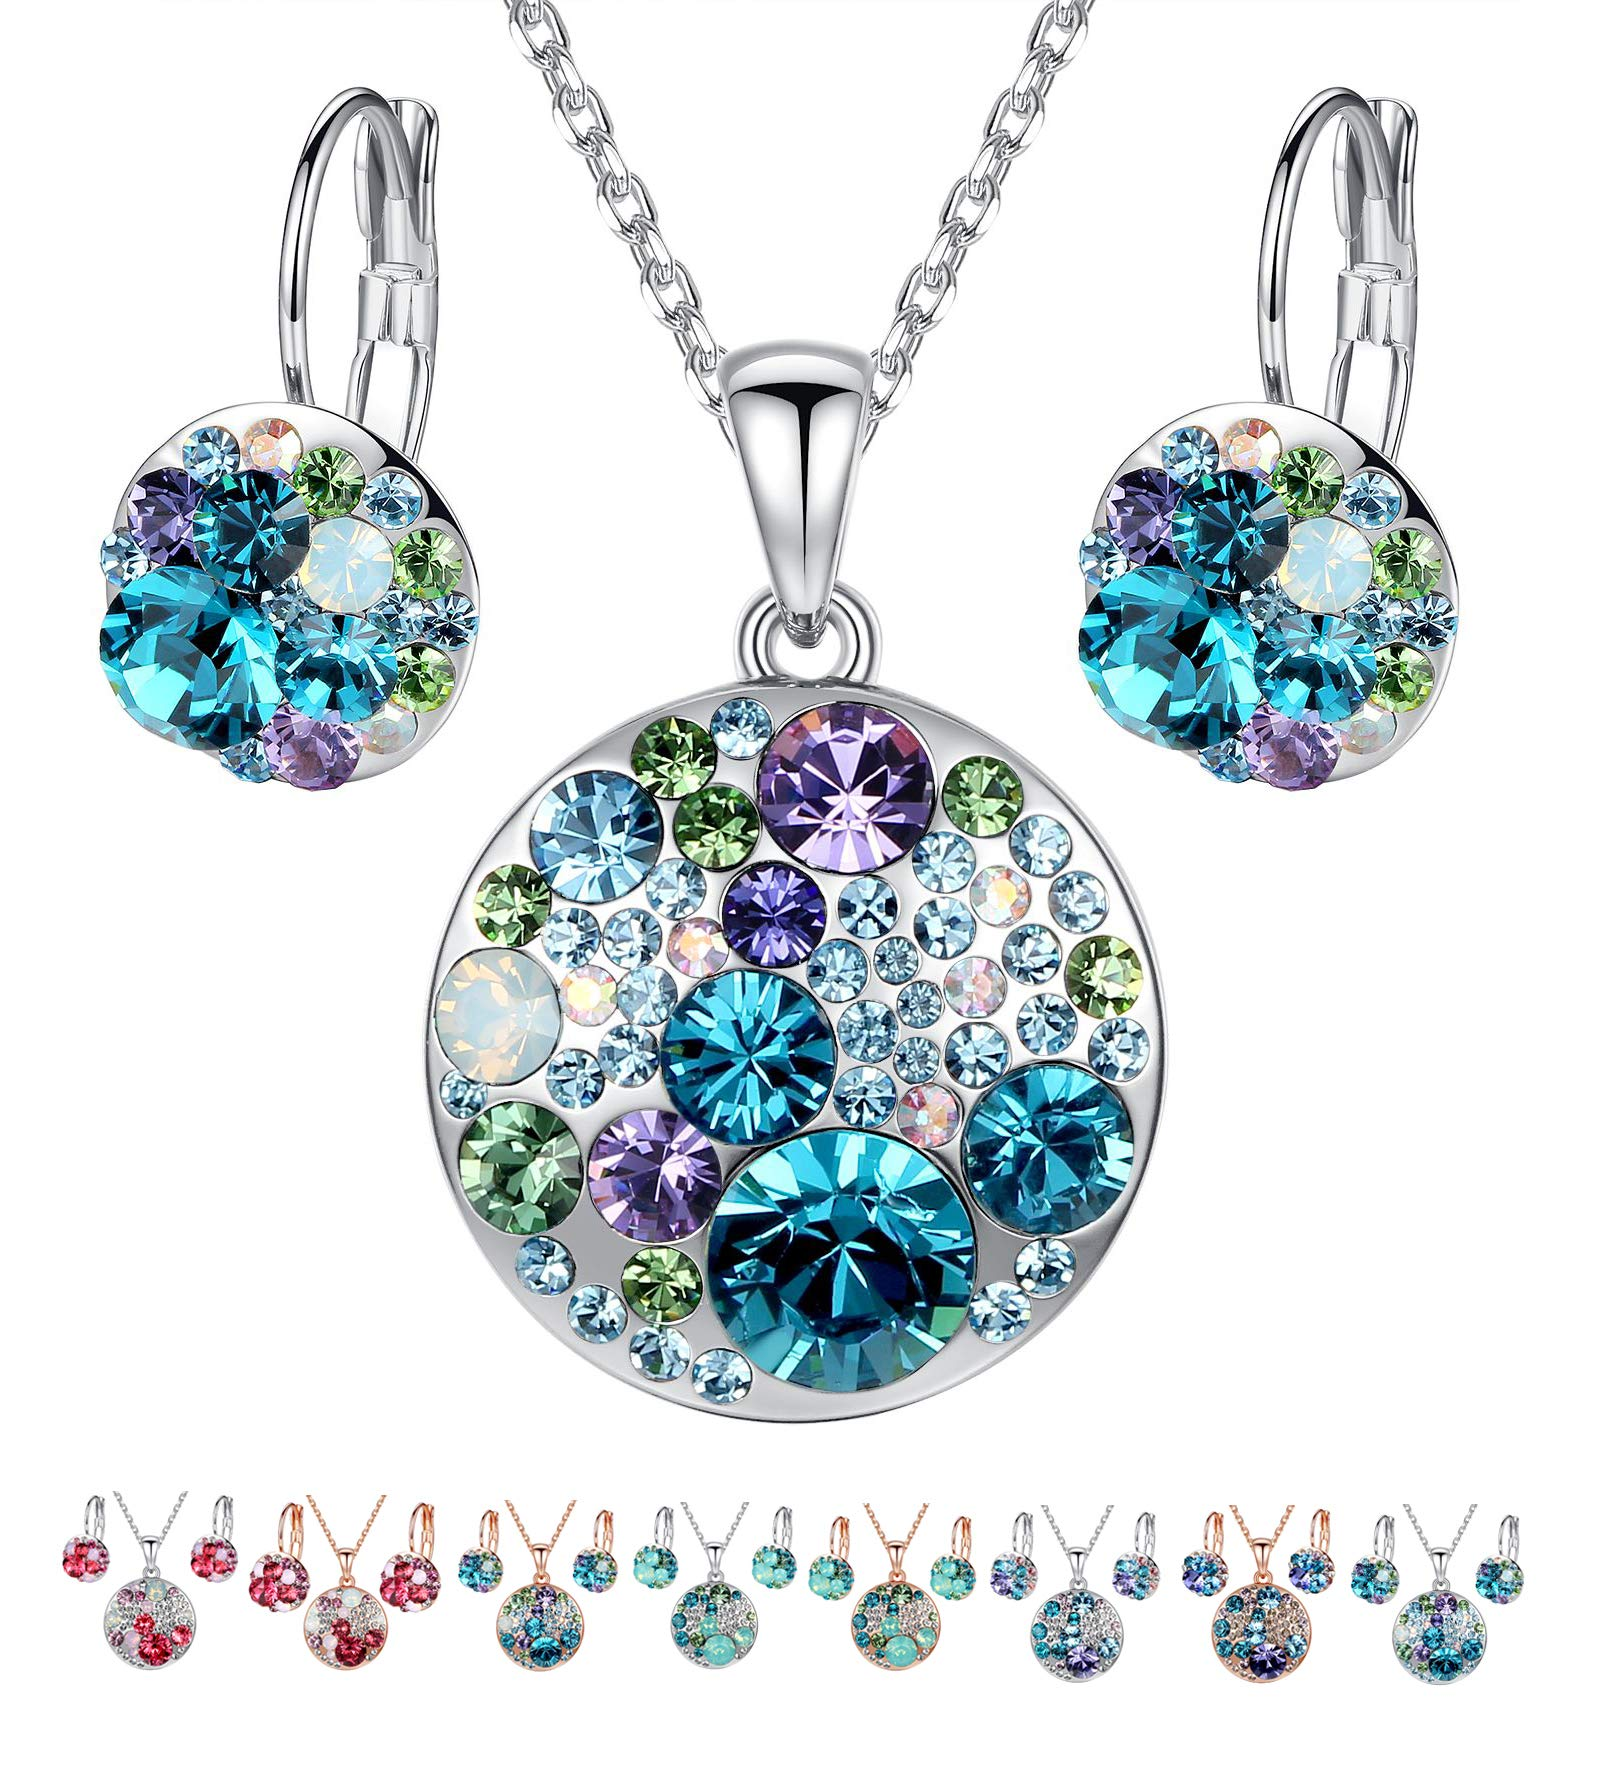 "Leafael Ocean Bubble Women's Jewelry Set Made with Swarovski Crystals Light Sapphire Blue Green Purple Costume Fashion Pendant Necklace Earring Set, Silver Tone, 18"" + 2"", Gifts for Women - wiihuu"